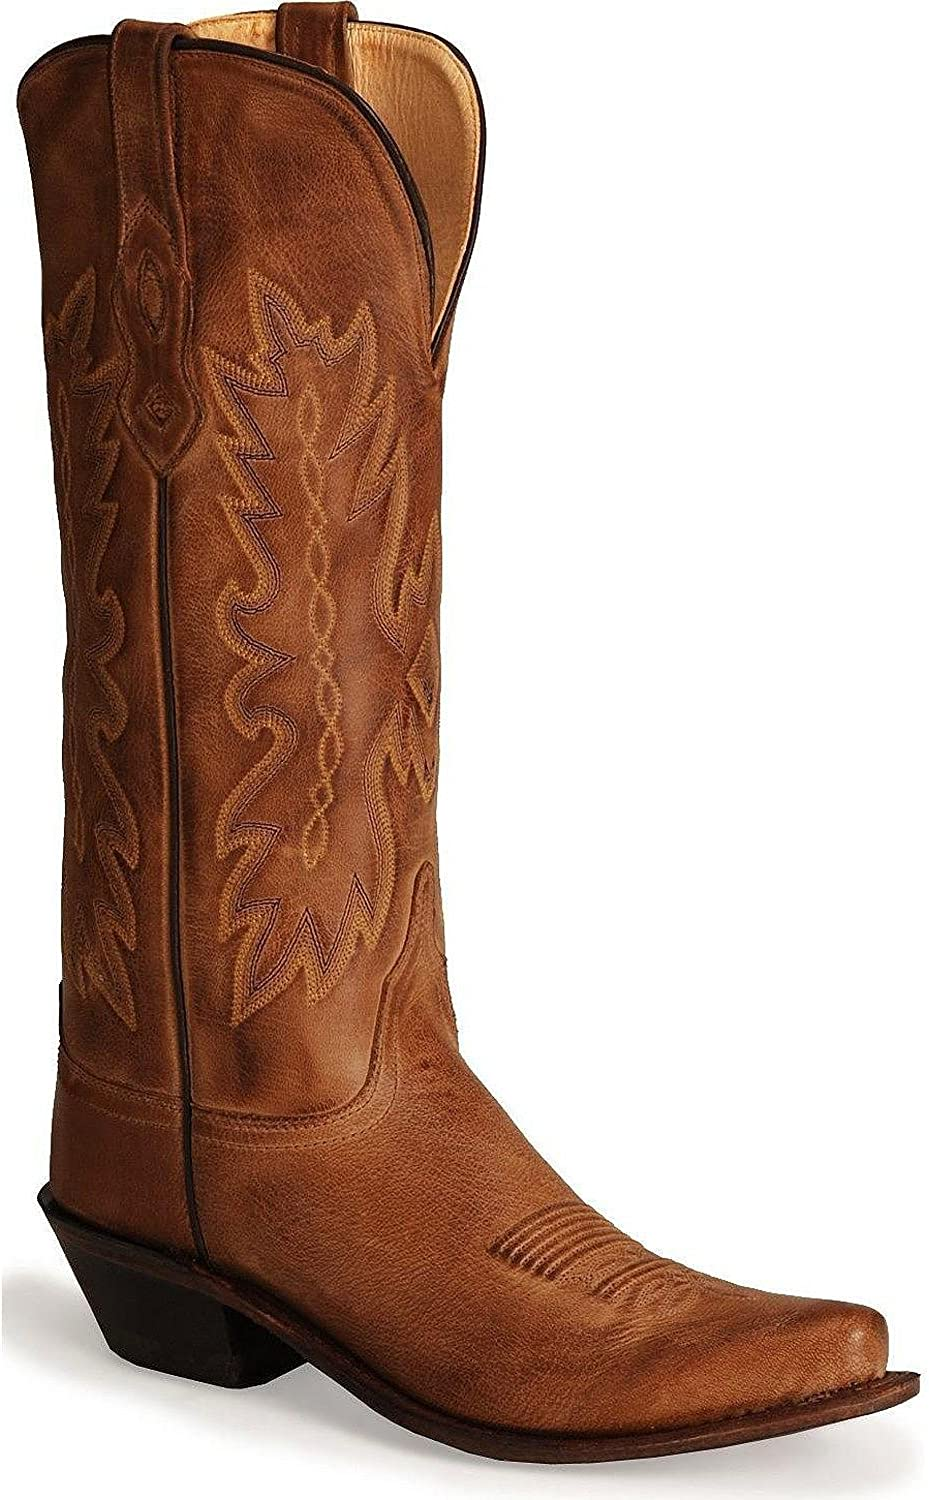 Old West Cowboy Boots Womens Tall Snip Leather 9.5 M Tan Canyon TS1541